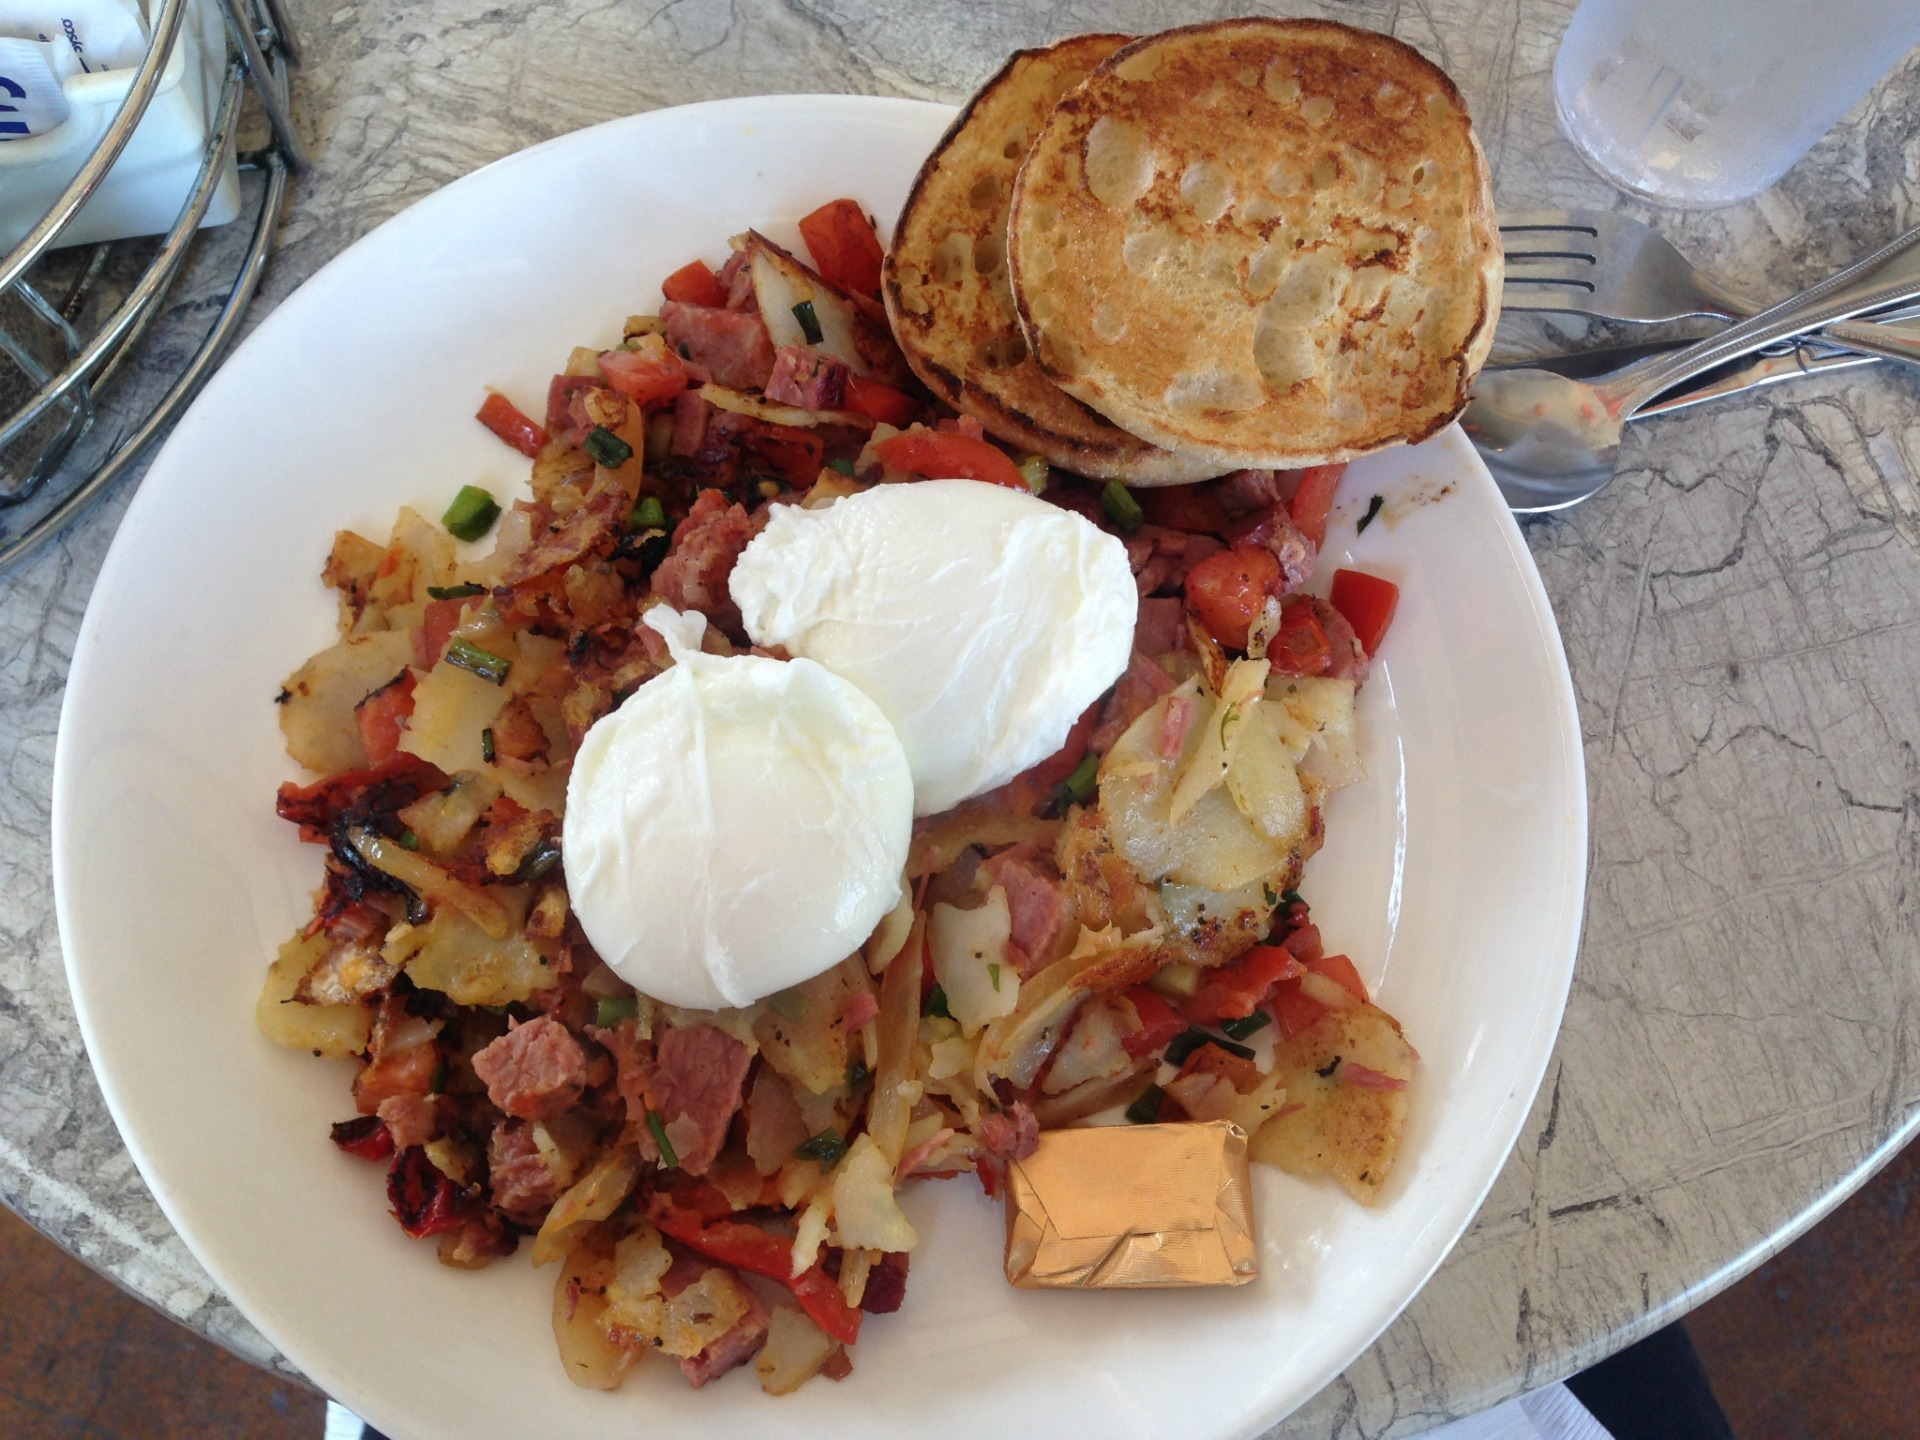 Corned beef hash at Cafe M